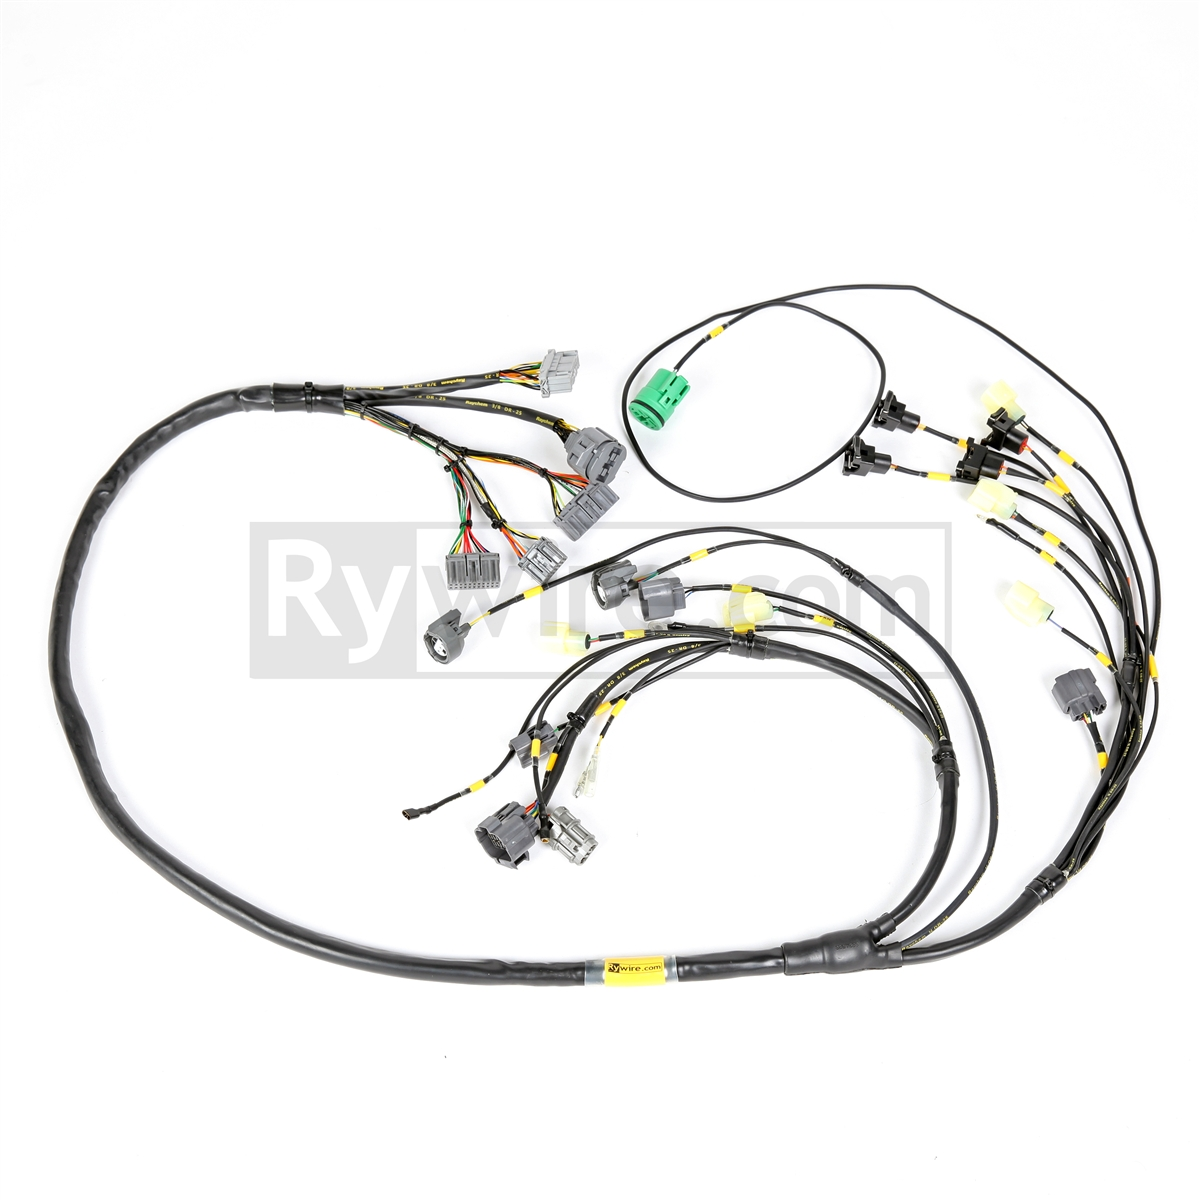 H1 Milspec 2?1402582650 rywire com mil spec f series (f20b) & h series (h22) harness what gauge wire for engine harness at arjmand.co